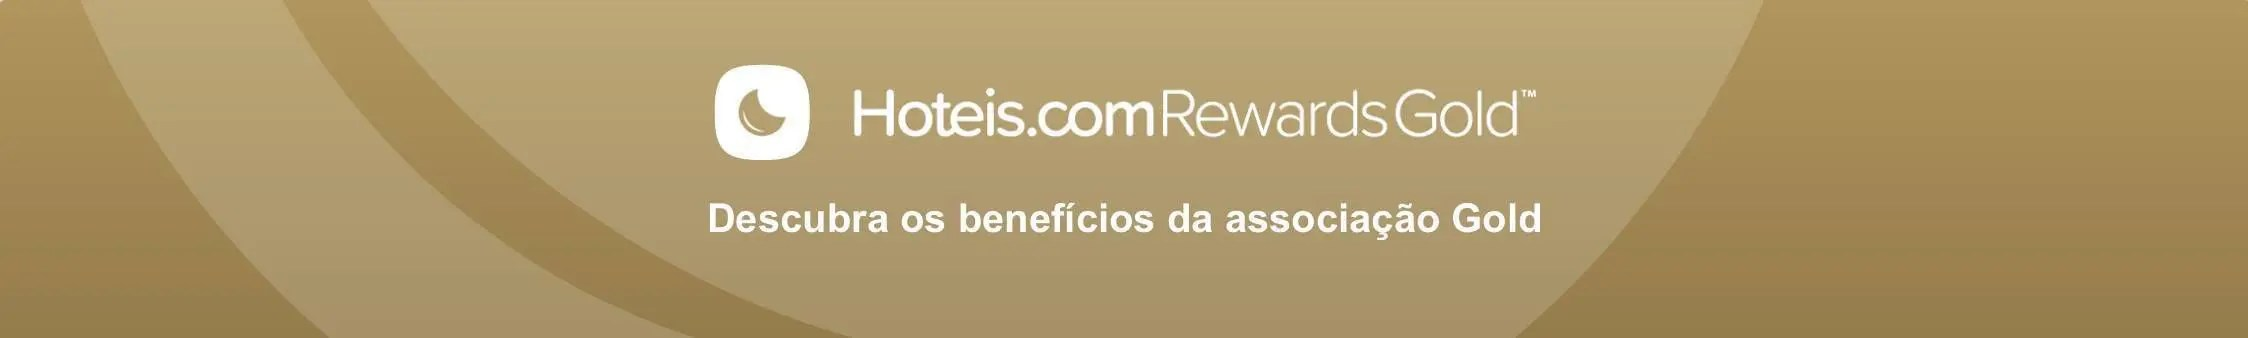 hoteis.com rewards gold